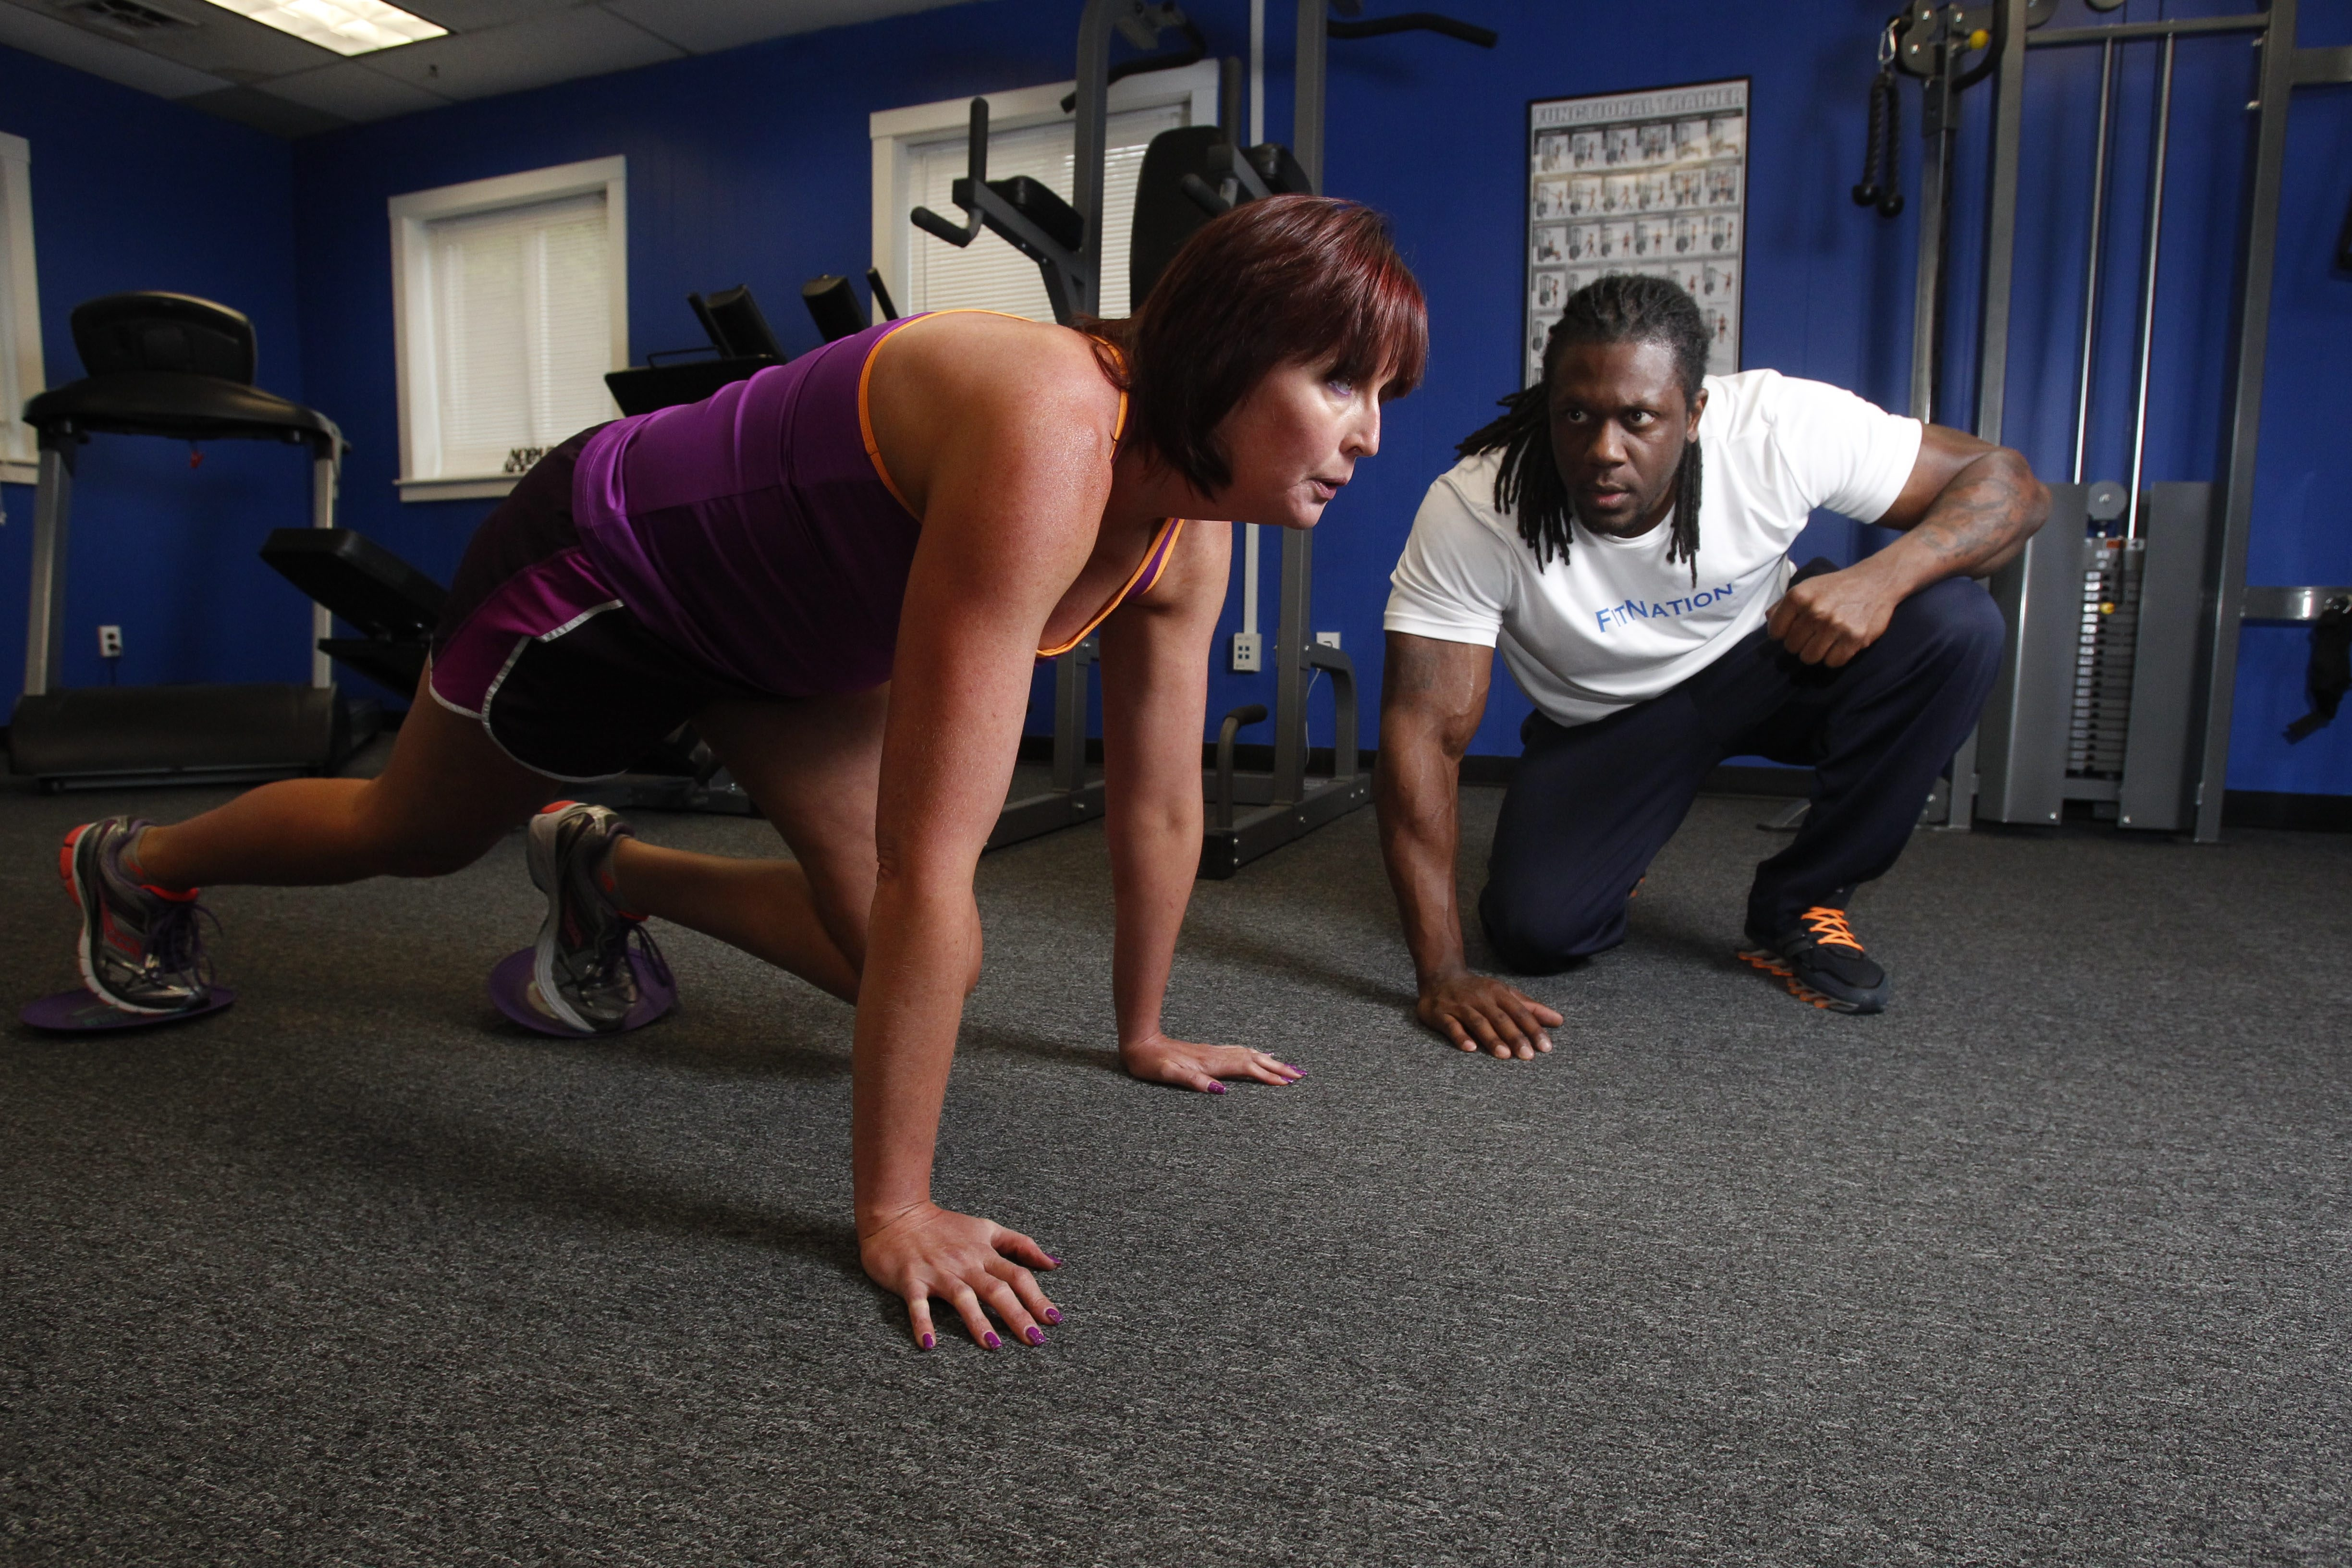 """""""I don't necessarily want to be a bodybuilder, but I wanted that look,"""" said Jennifer Gruber, shown working out with Dwayne Brinson, who helped her lose nearly 65 pounds."""